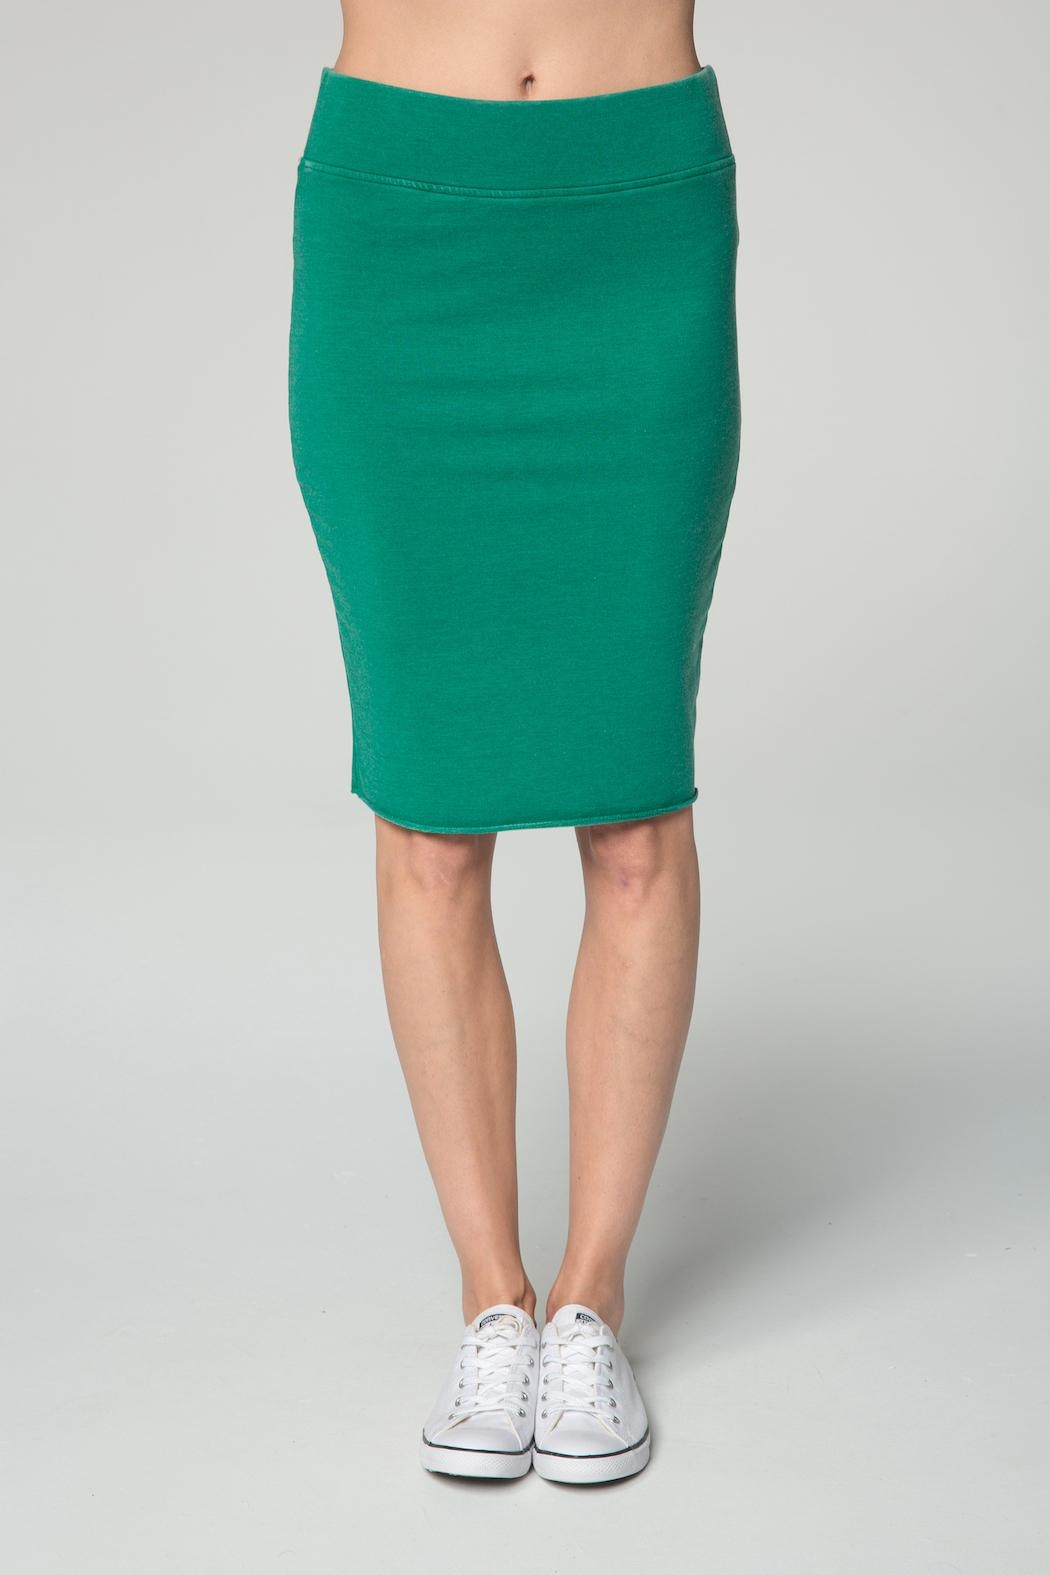 Sundays Knee Length Tube Skirt - Front Cropped Image